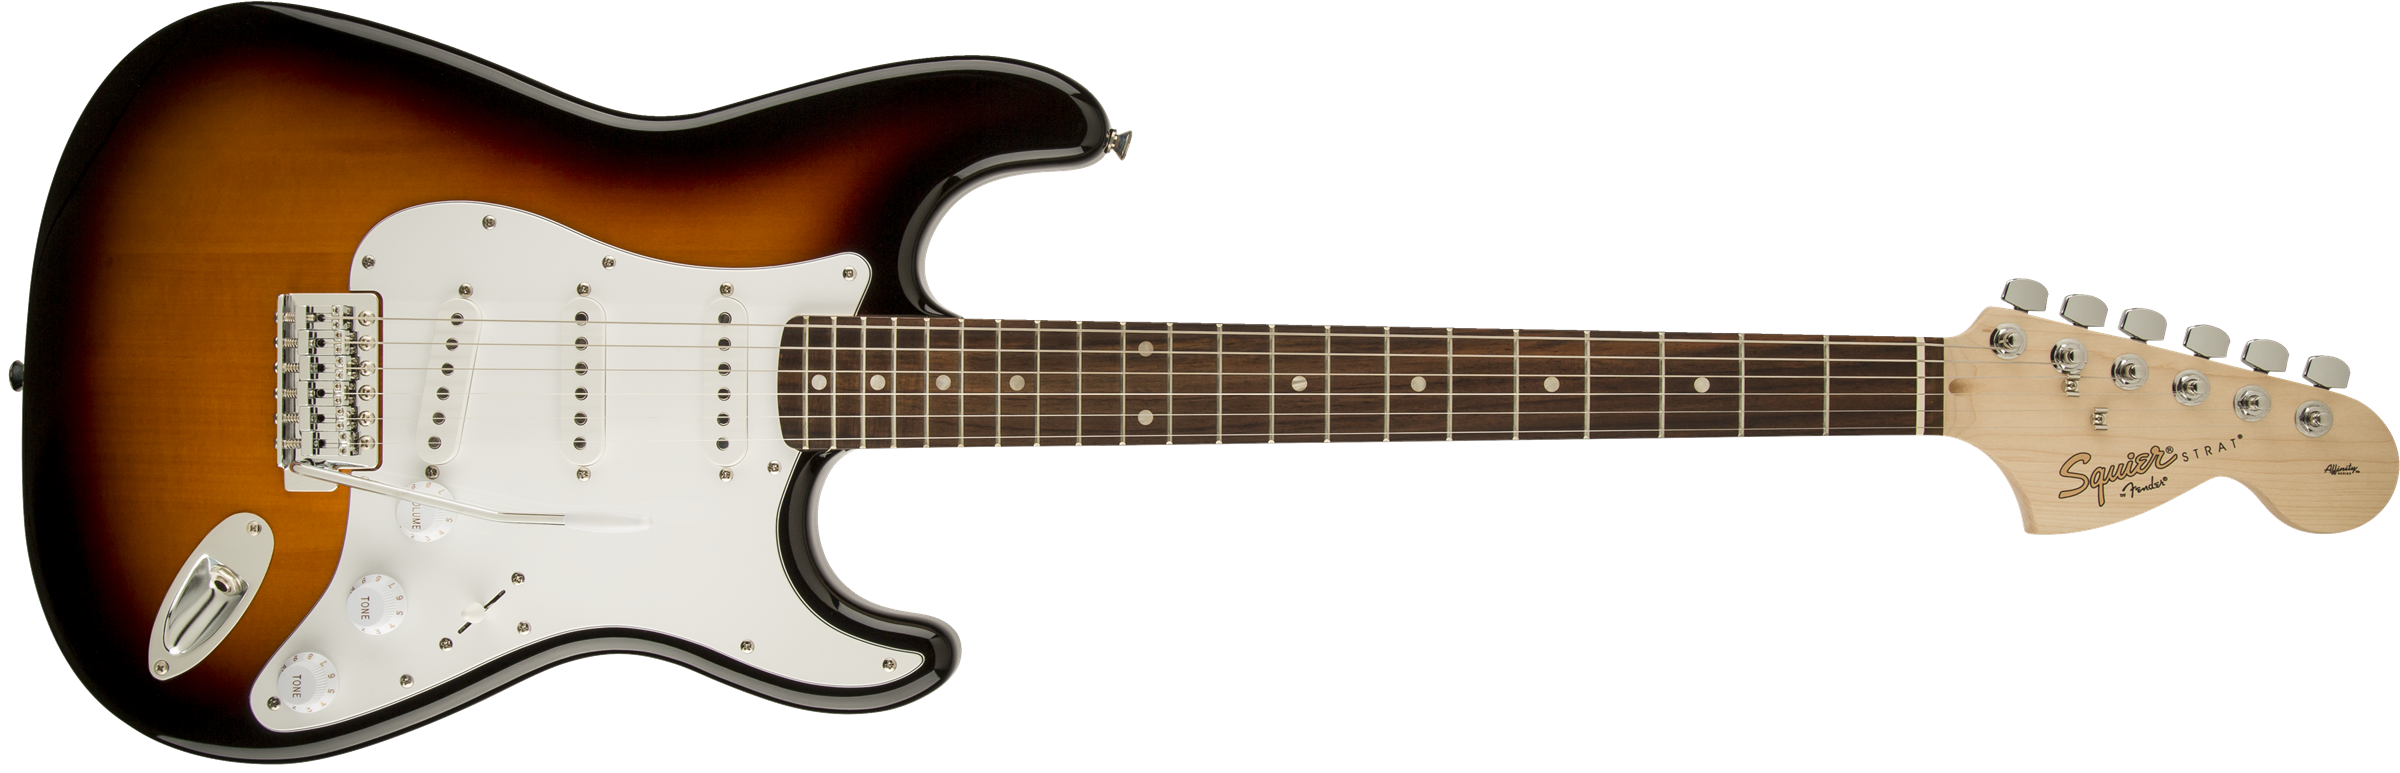 Squier Affinity Stratocaster Brown Sunburst Laurel